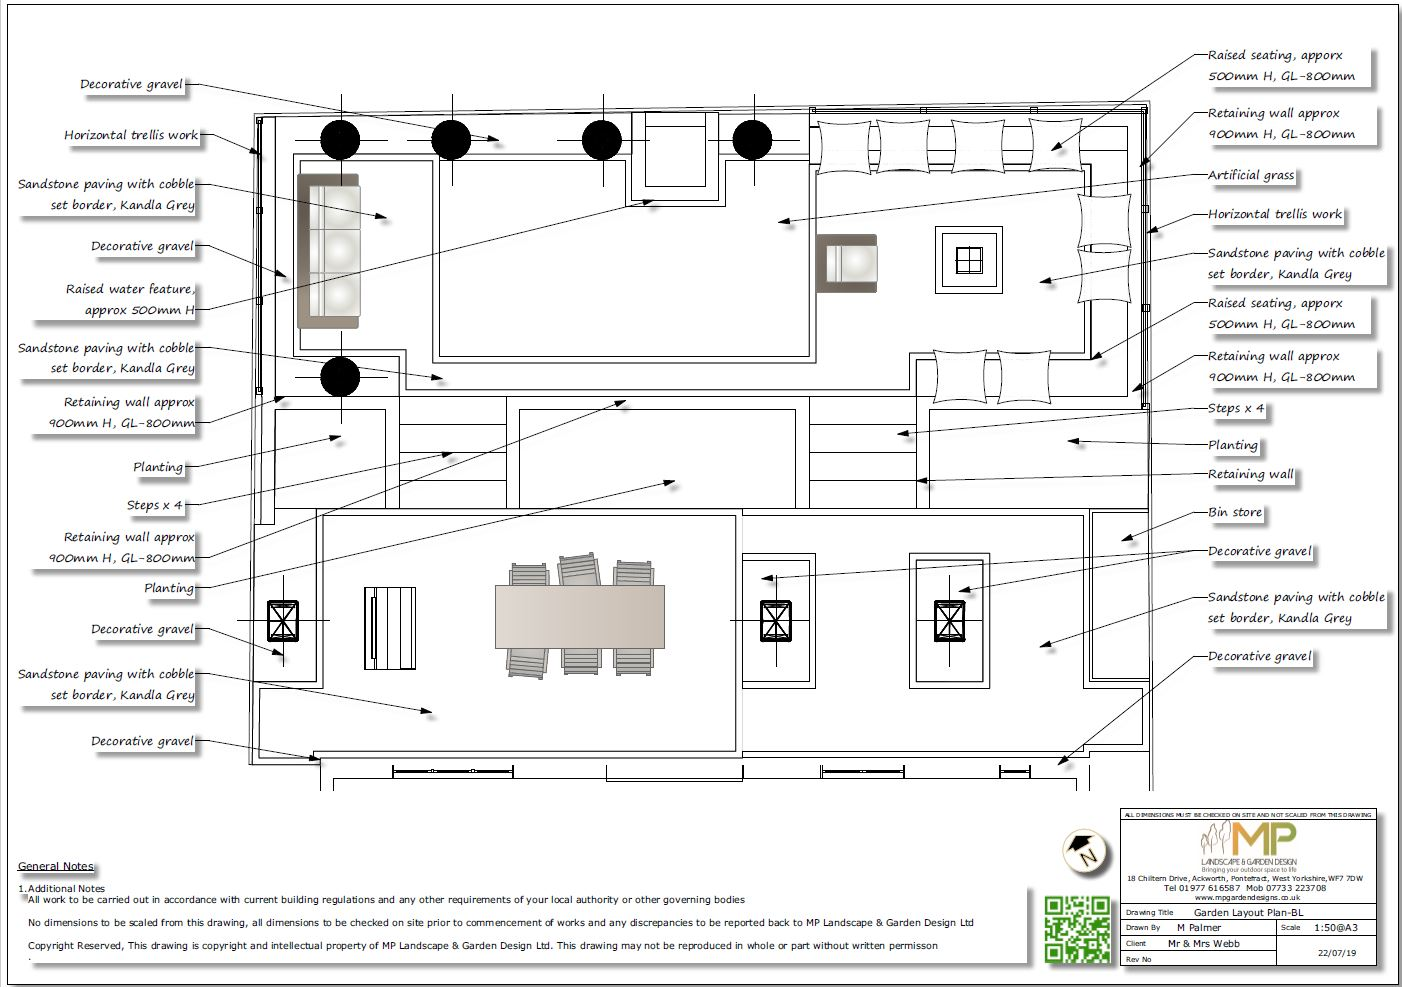 2, Black & white garden layout plan for a new build property in Pontefract.